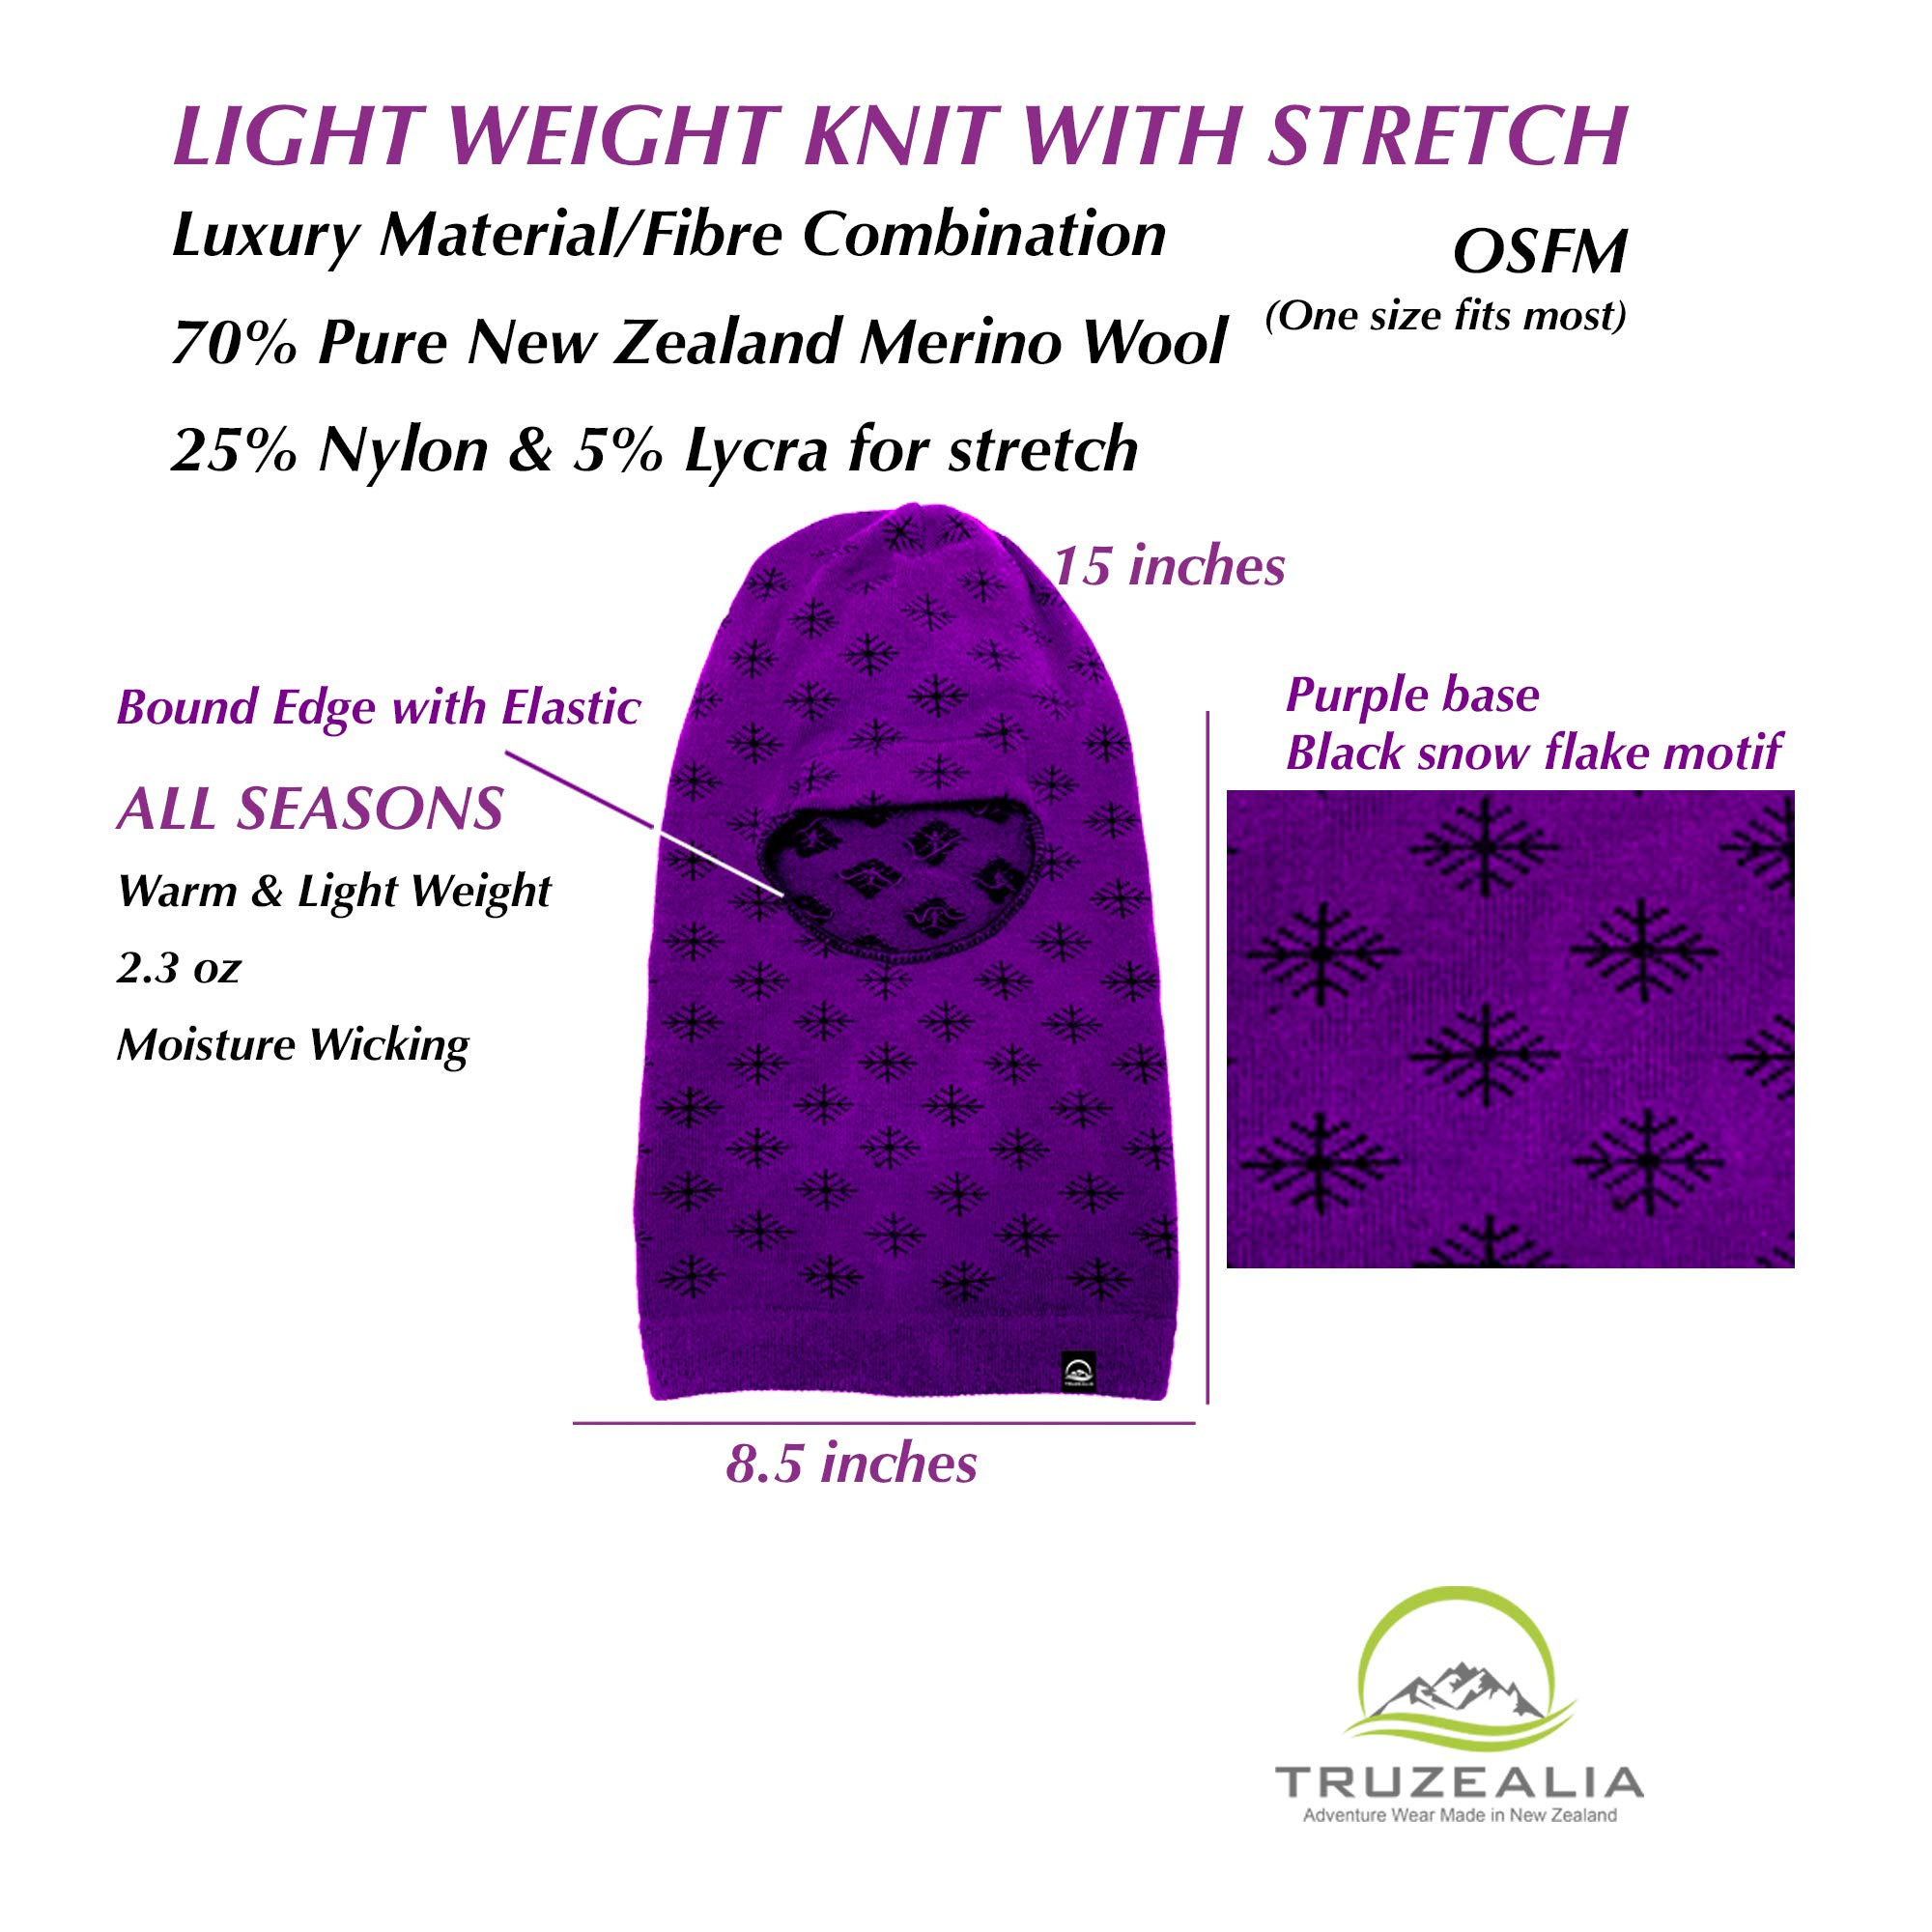 Balaclava Outdoor Wear Hat Cap Unisex New Zealand Made Merino Wool Luxurious Warmth and Soft with a Light Weight Stretchy Face Mask Stylish Unique Moisture Wicking with Thermal Properties Purple by Truzealia (Image #4)